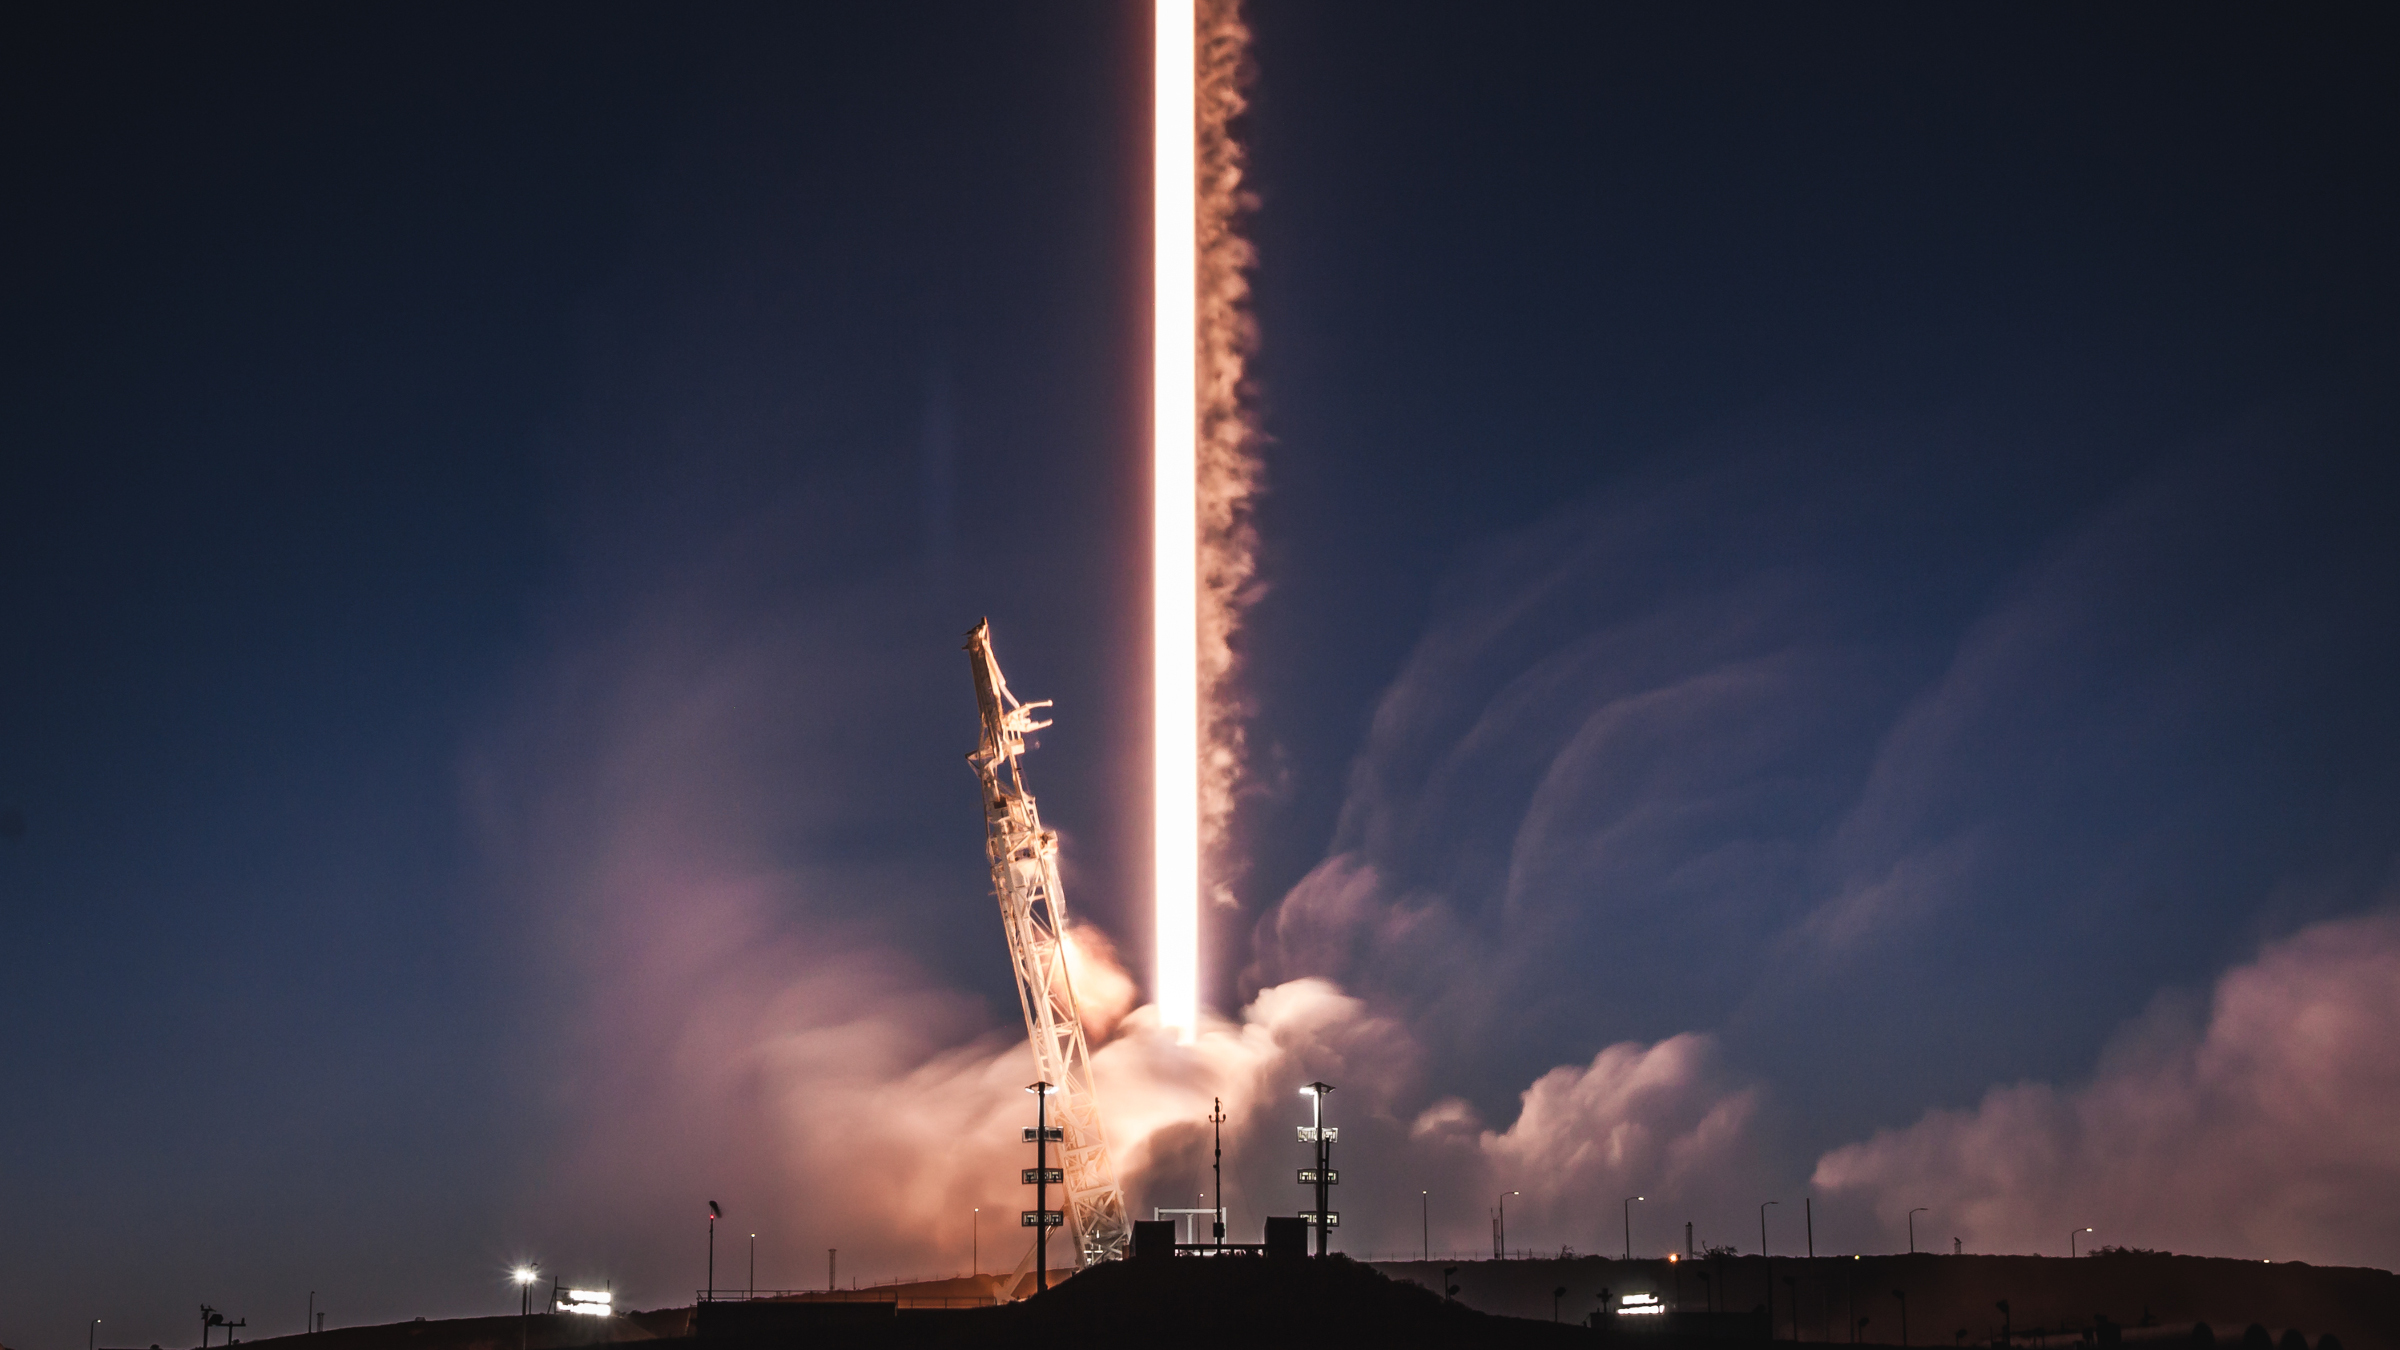 A SpaceX Falcon 9 rocket launches a satellite in 2018.